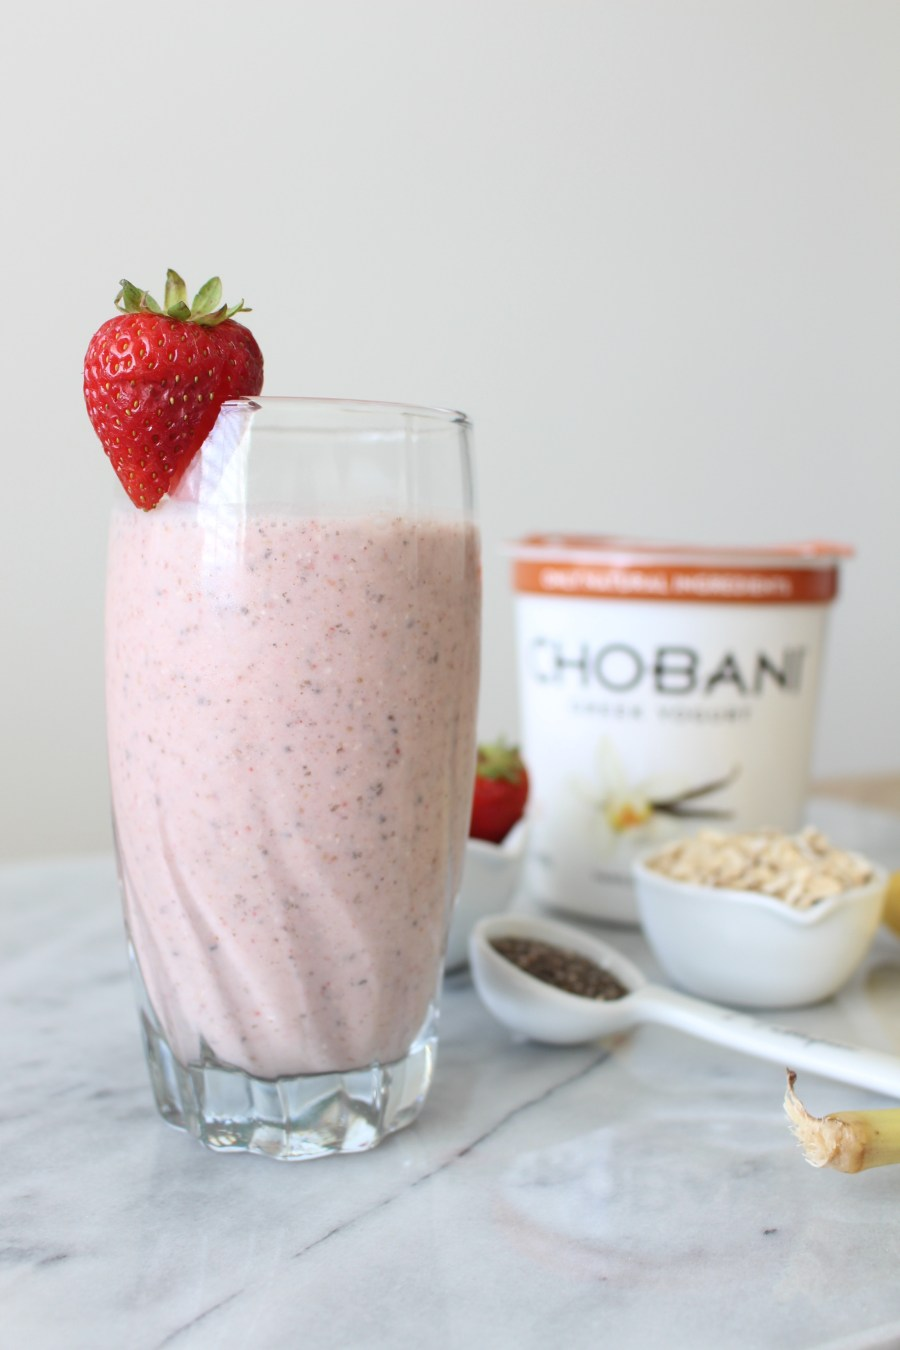 Healthy Smoothie Recipes, food blog, Treats and Trends, Chobani